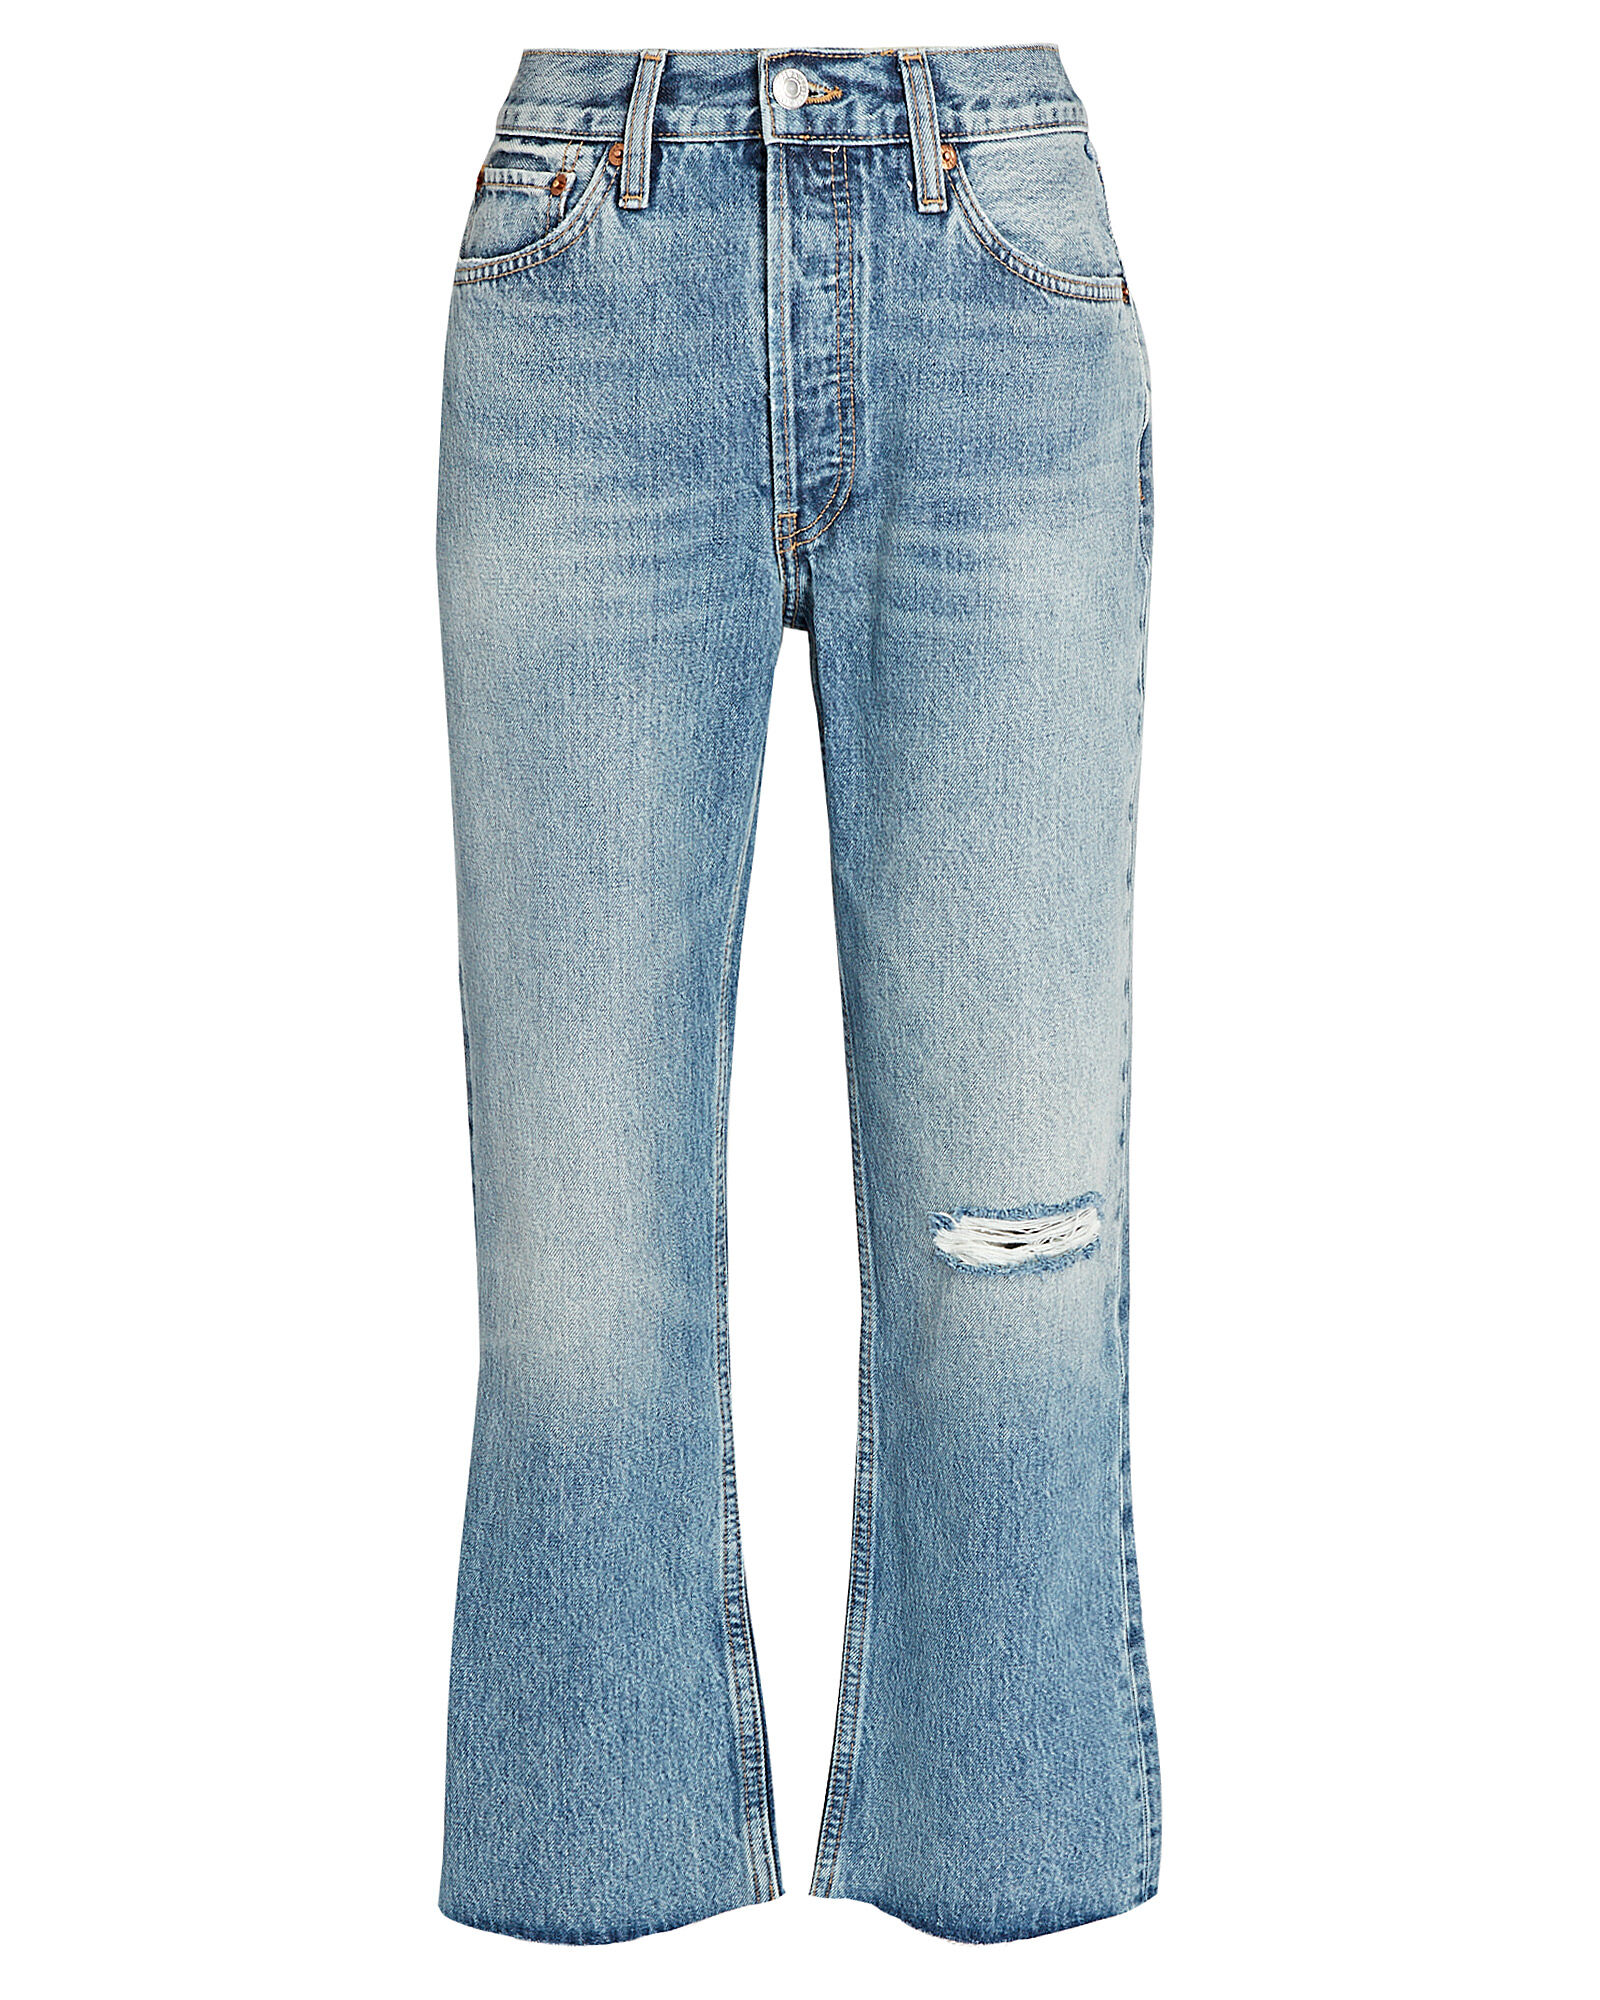 90's High-Rise Loose Jeans, LIGHT WORN 11, hi-res